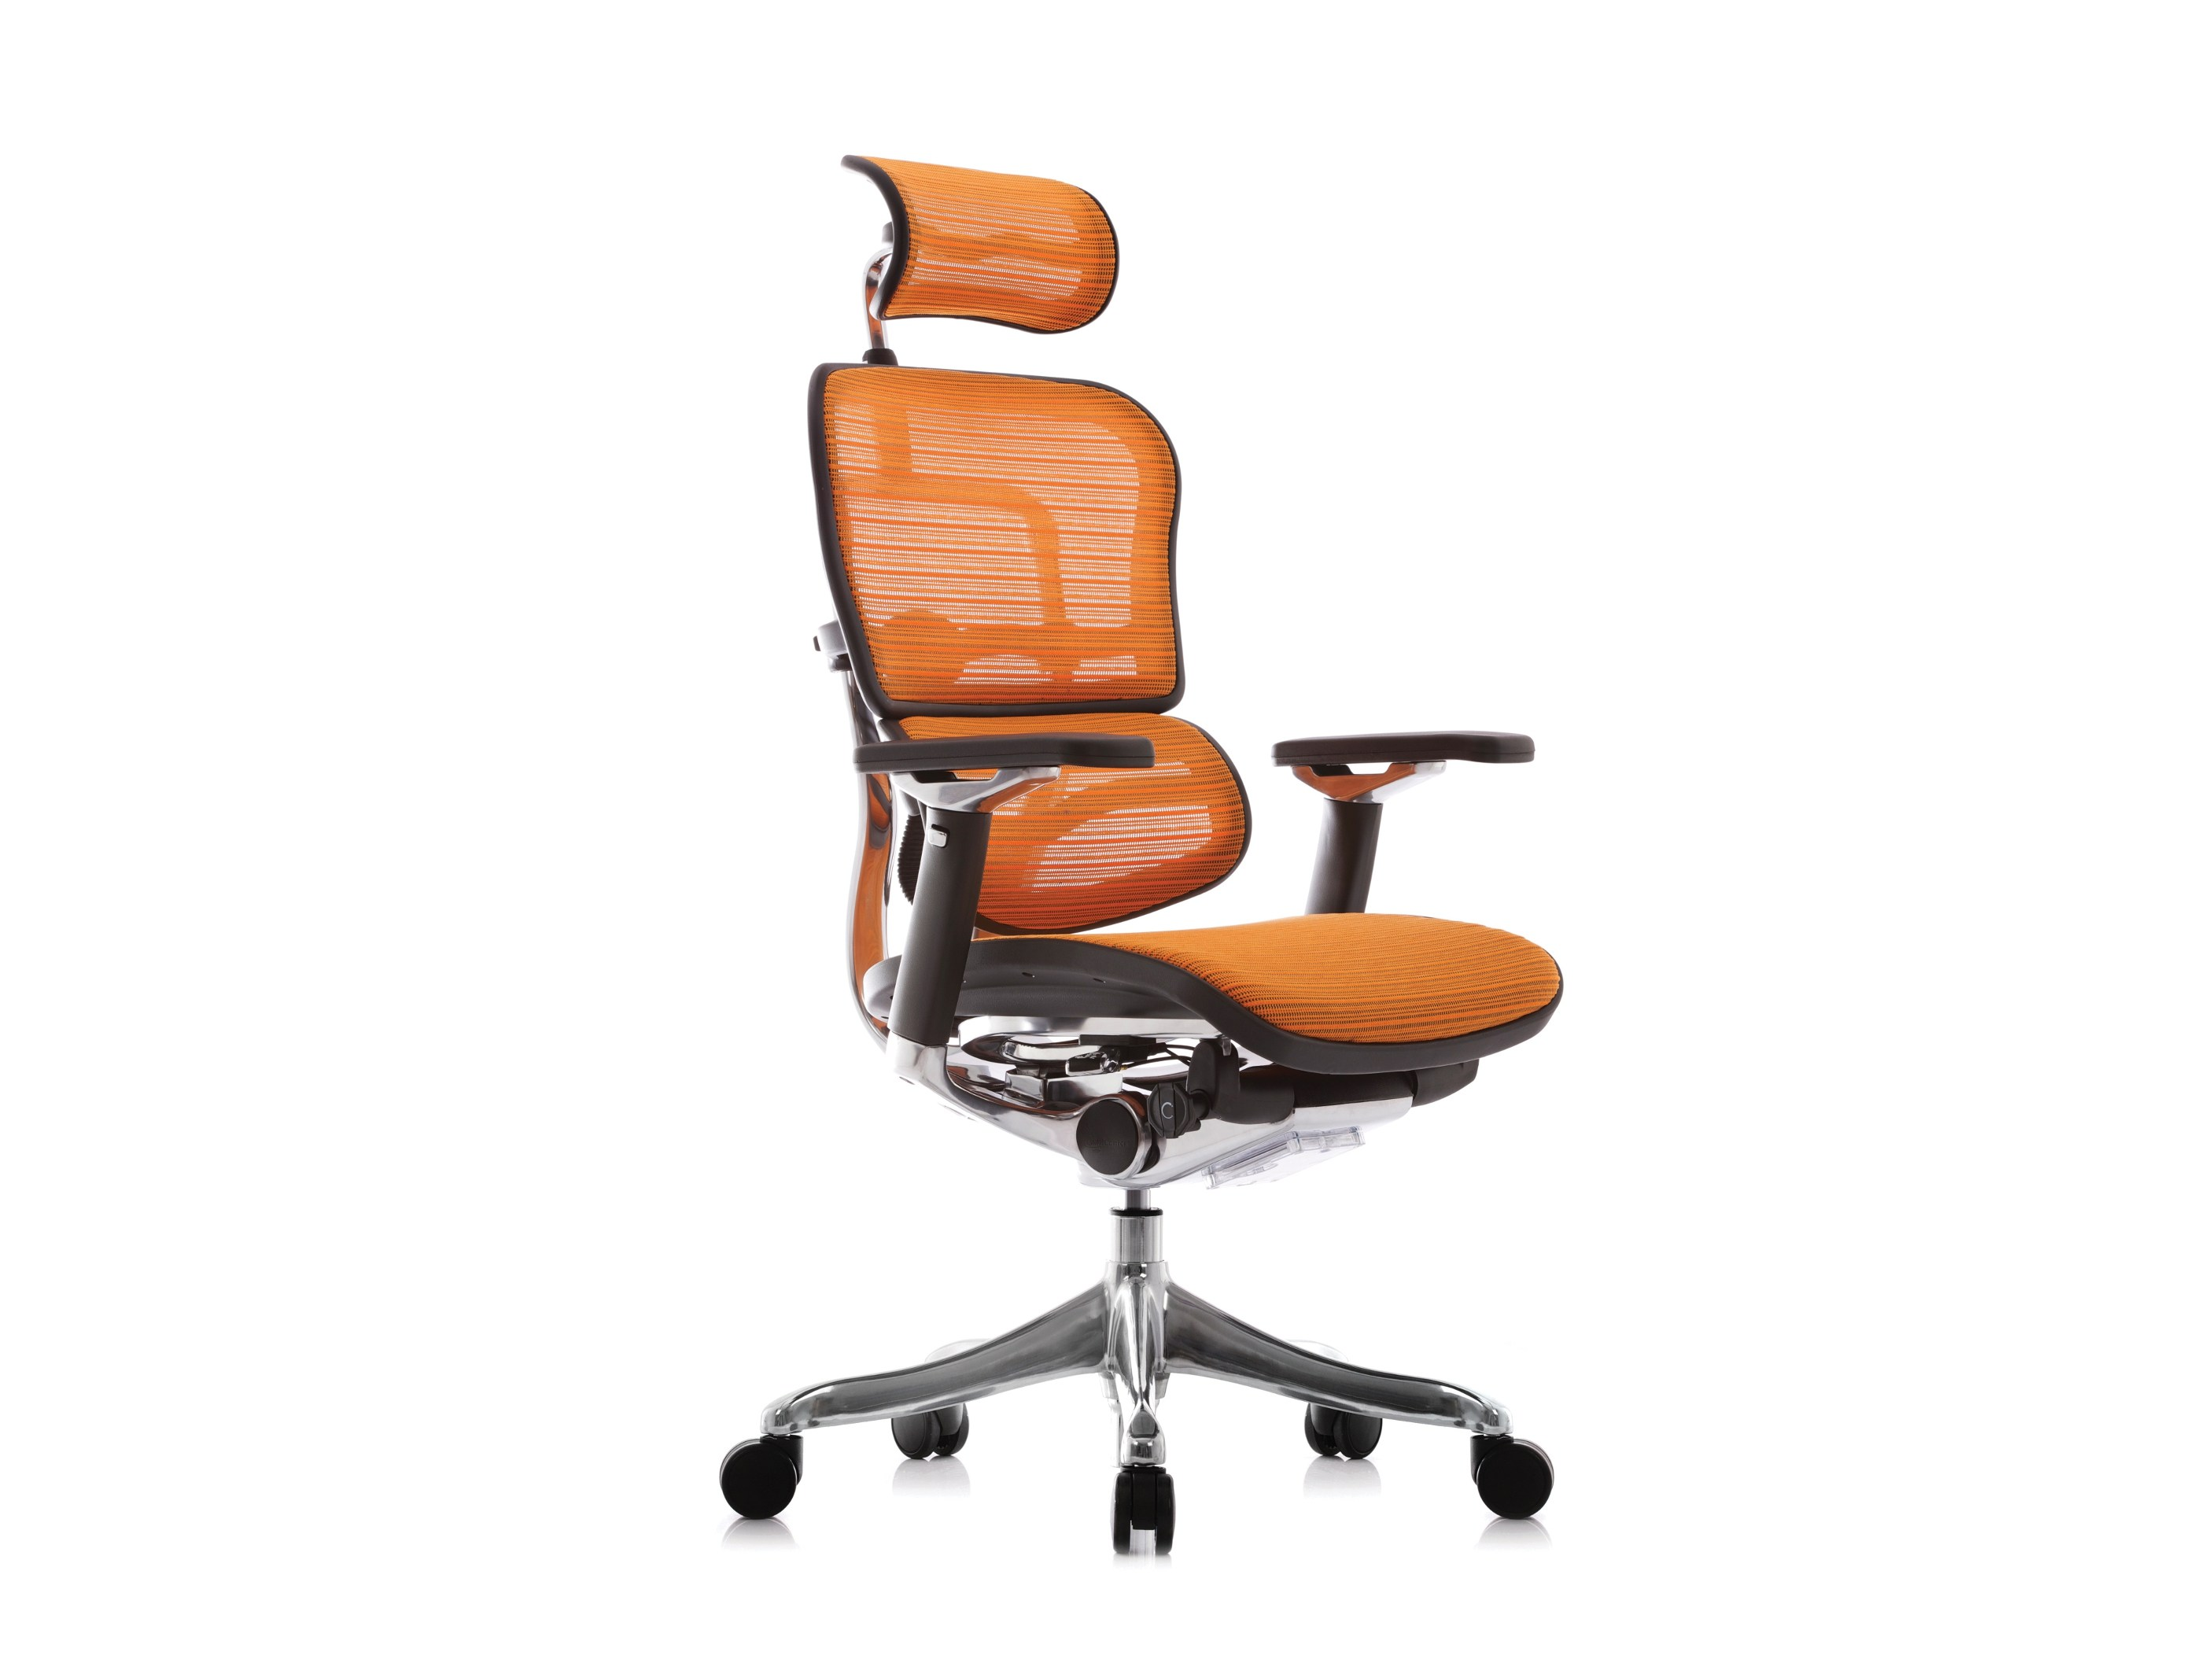 Swivel executive chair with 5 spoke base with armrests ERGOHUMAN